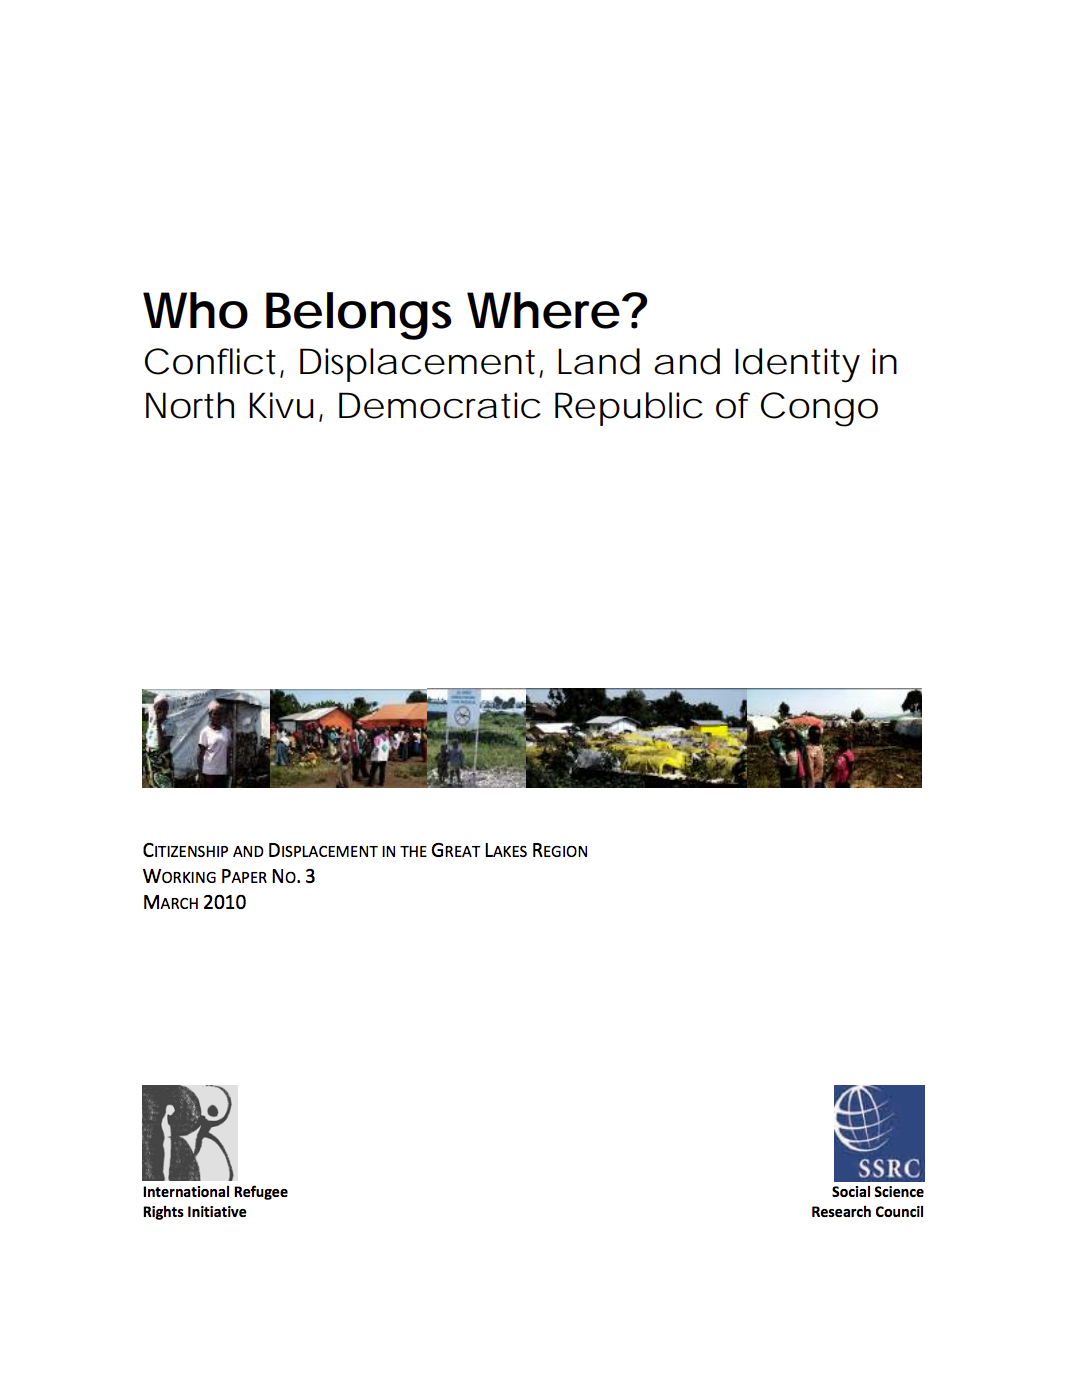 Who Belongs Where? Conflict, Displacement, Land and Identity in North Kivu, Democratic Republic of Congo cover image